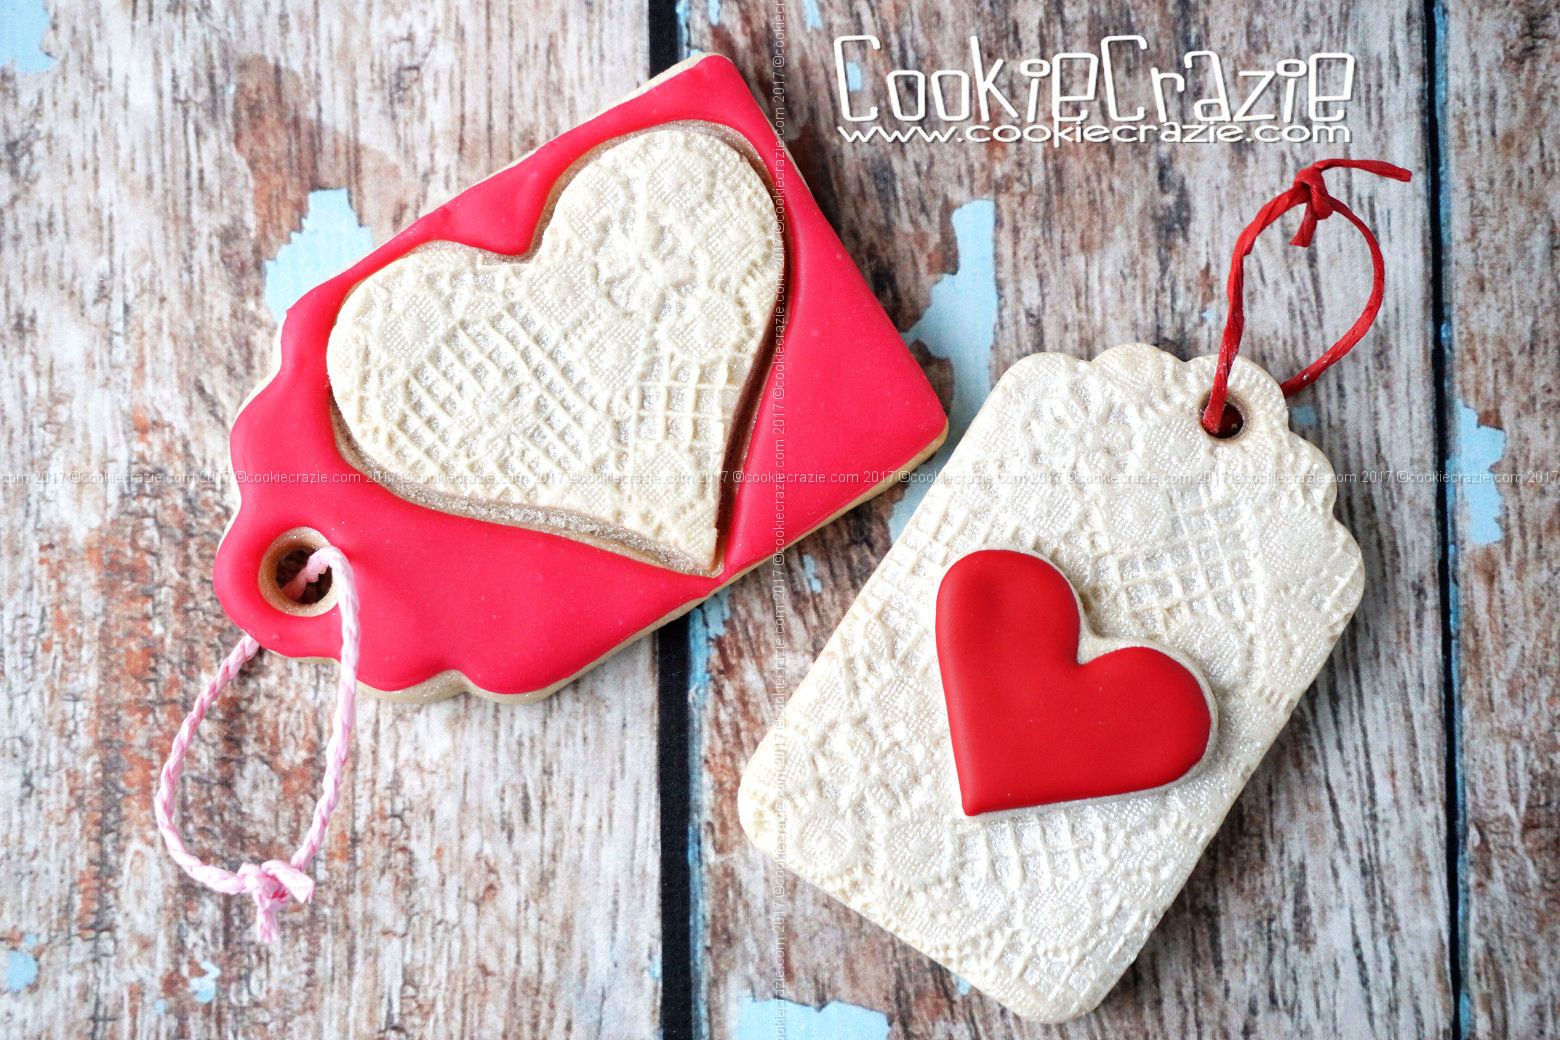 Lacy Heart Valentine Gift Tag Decorated Sugar Cookies YouTube video  HERE